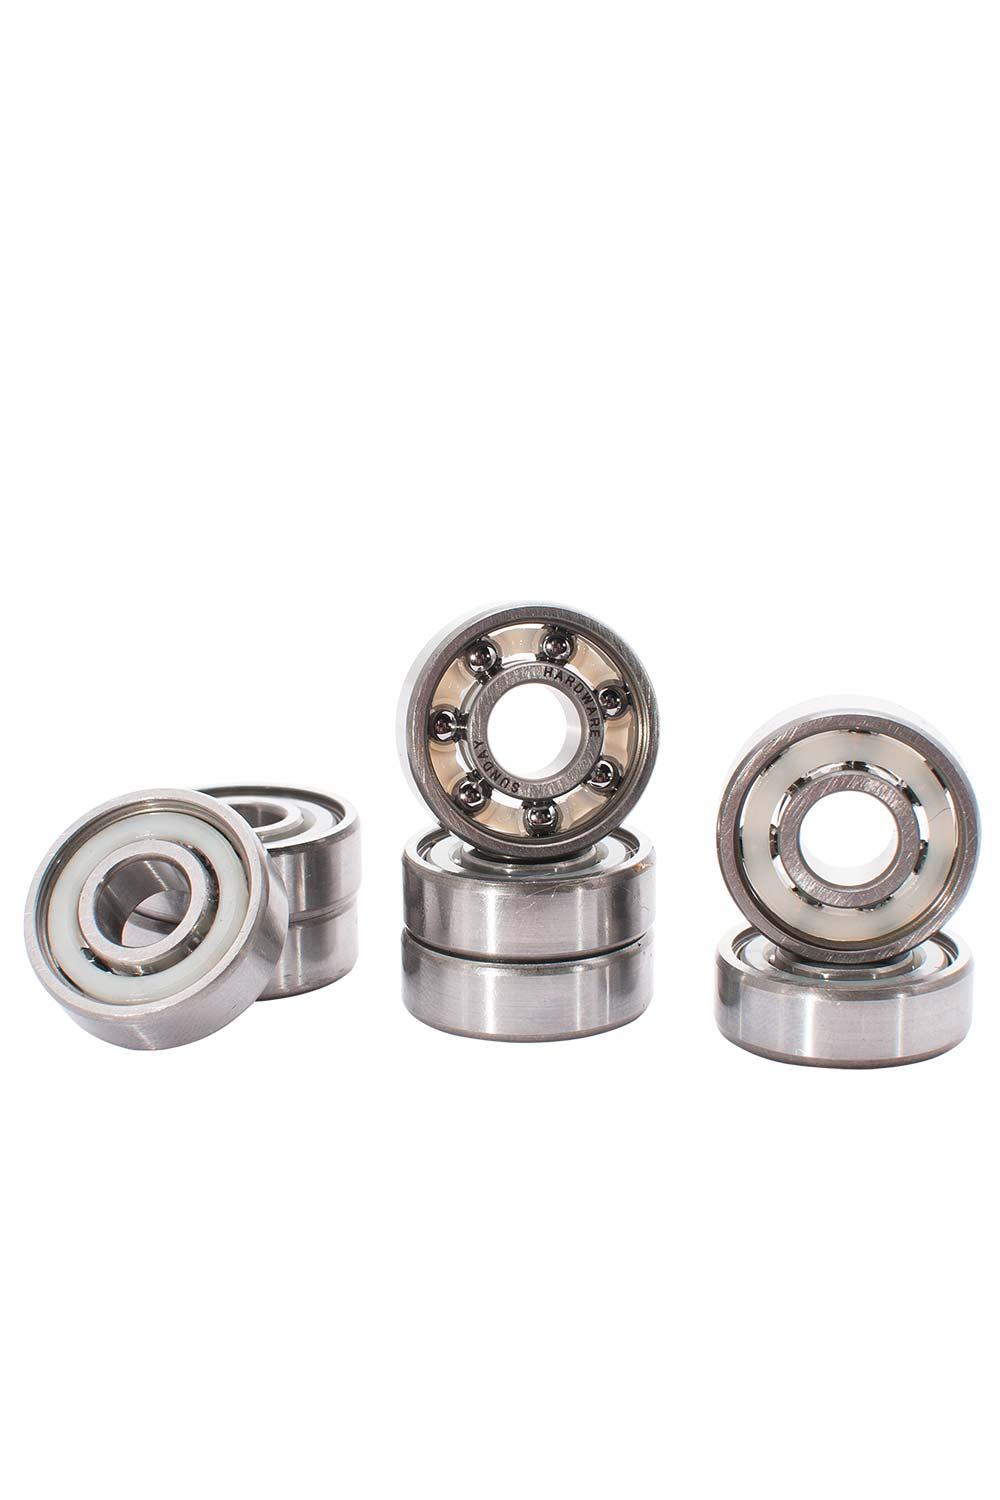 Sunday Shieldless Bearings